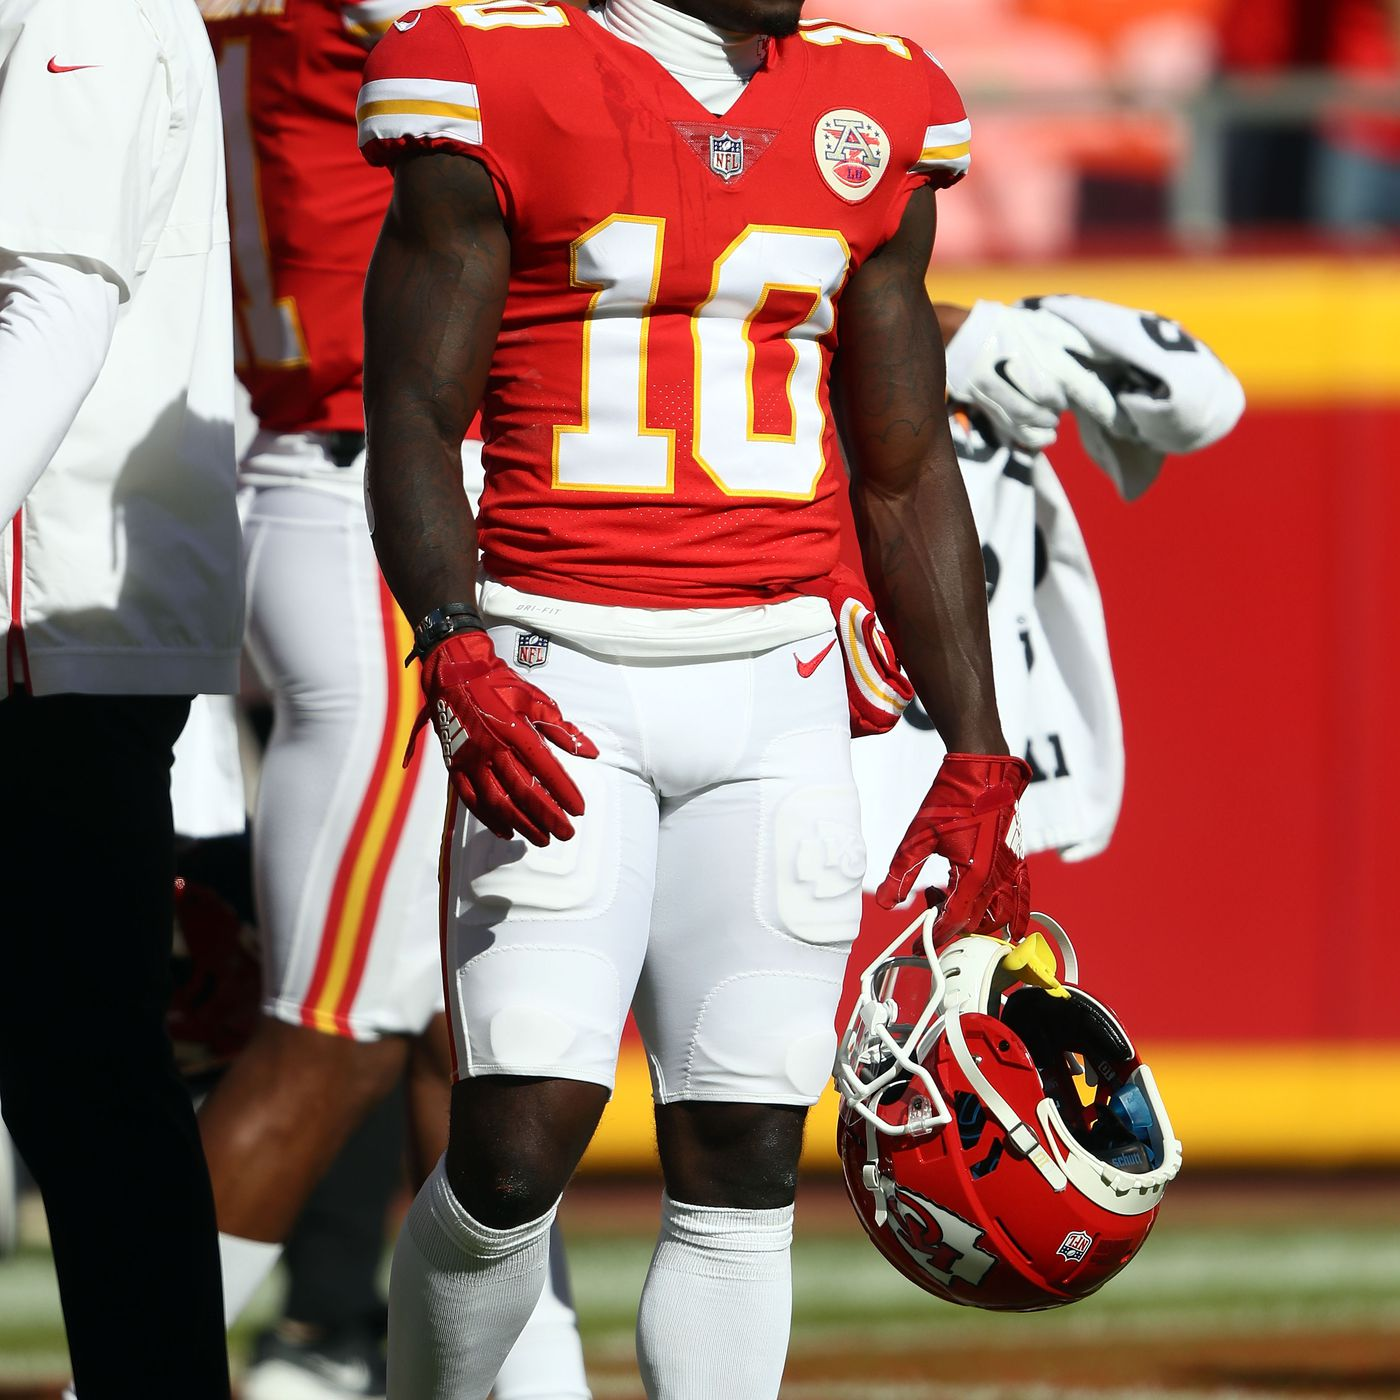 893d41e02b0 Chiefs  Tyreek Hill not charged for alleged battery of juvenile -  SBNation.com